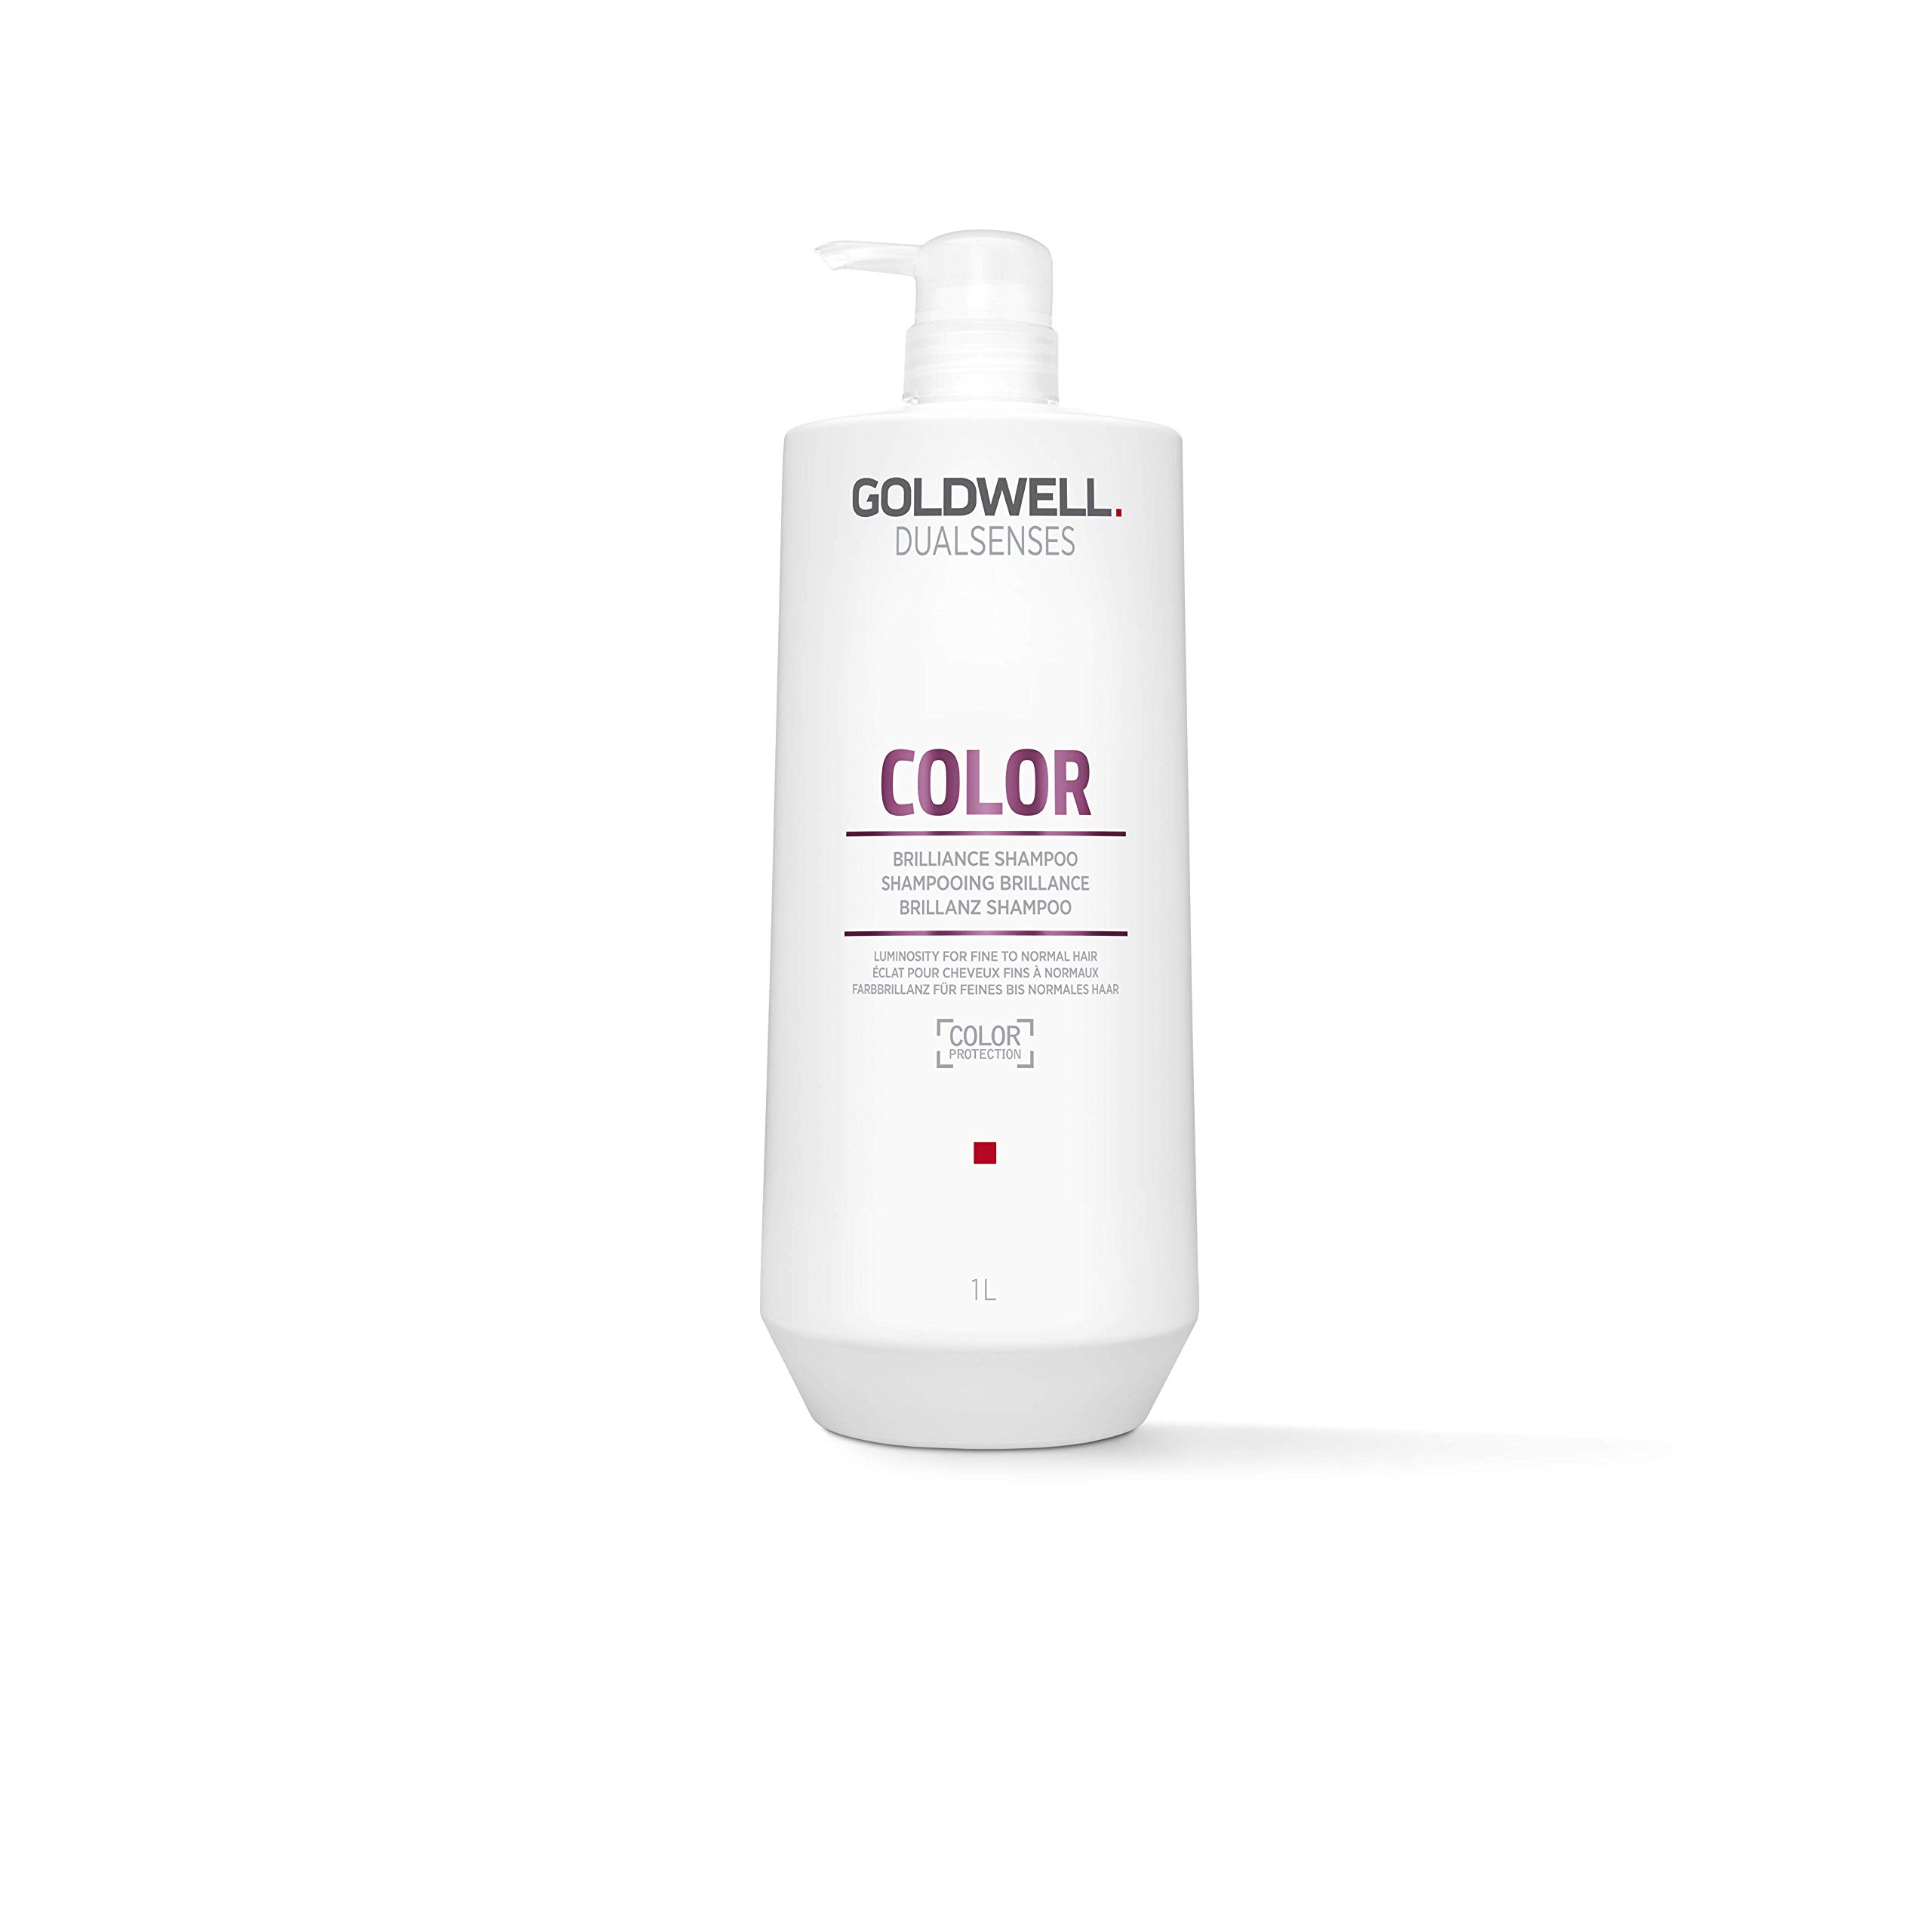 Goldwell Dualsenses Color Brilliance Shampoo, 25.4 Ounce by Goldwell